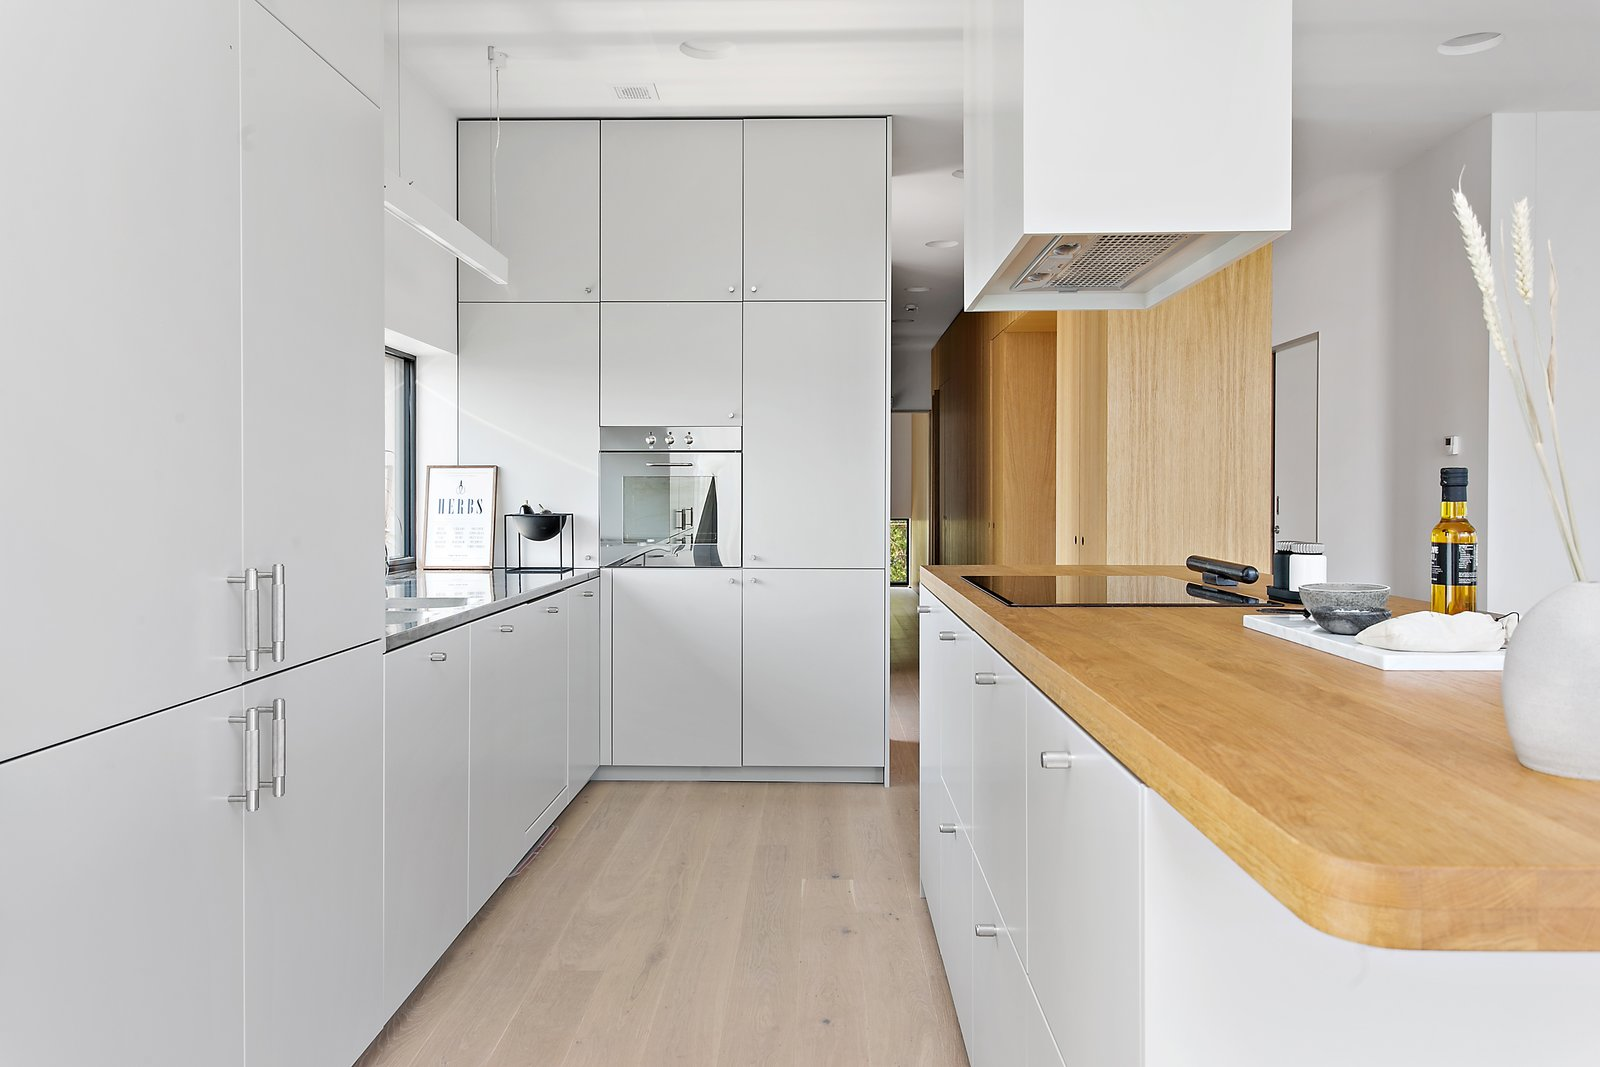 Kitchen, Light Hardwood, Wood, White, Wall Oven, Recessed, Range Hood, Cooktops, Drop In, and Pendant The kitchen features a sleek, modern mix of white millwork and natural wood countertops, and offers an impressive amount of storage.     Best Kitchen Cooktops Drop In Wall Oven Range Hood Light Hardwood Photos from Picture Yourself  in This Clifftop Swedish Retreat Asking $1.08M